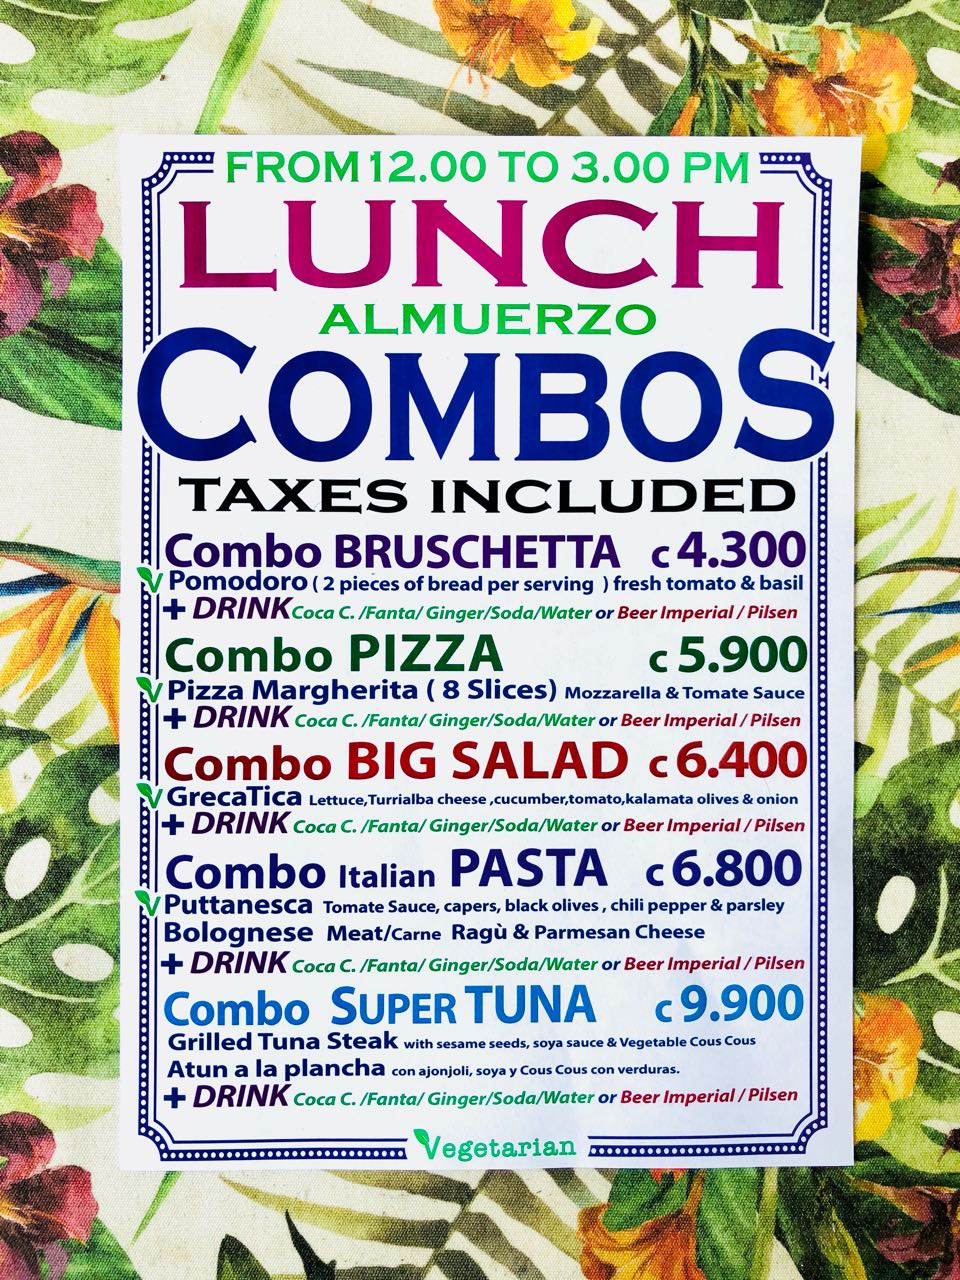 gusto beach lunch combos 2018